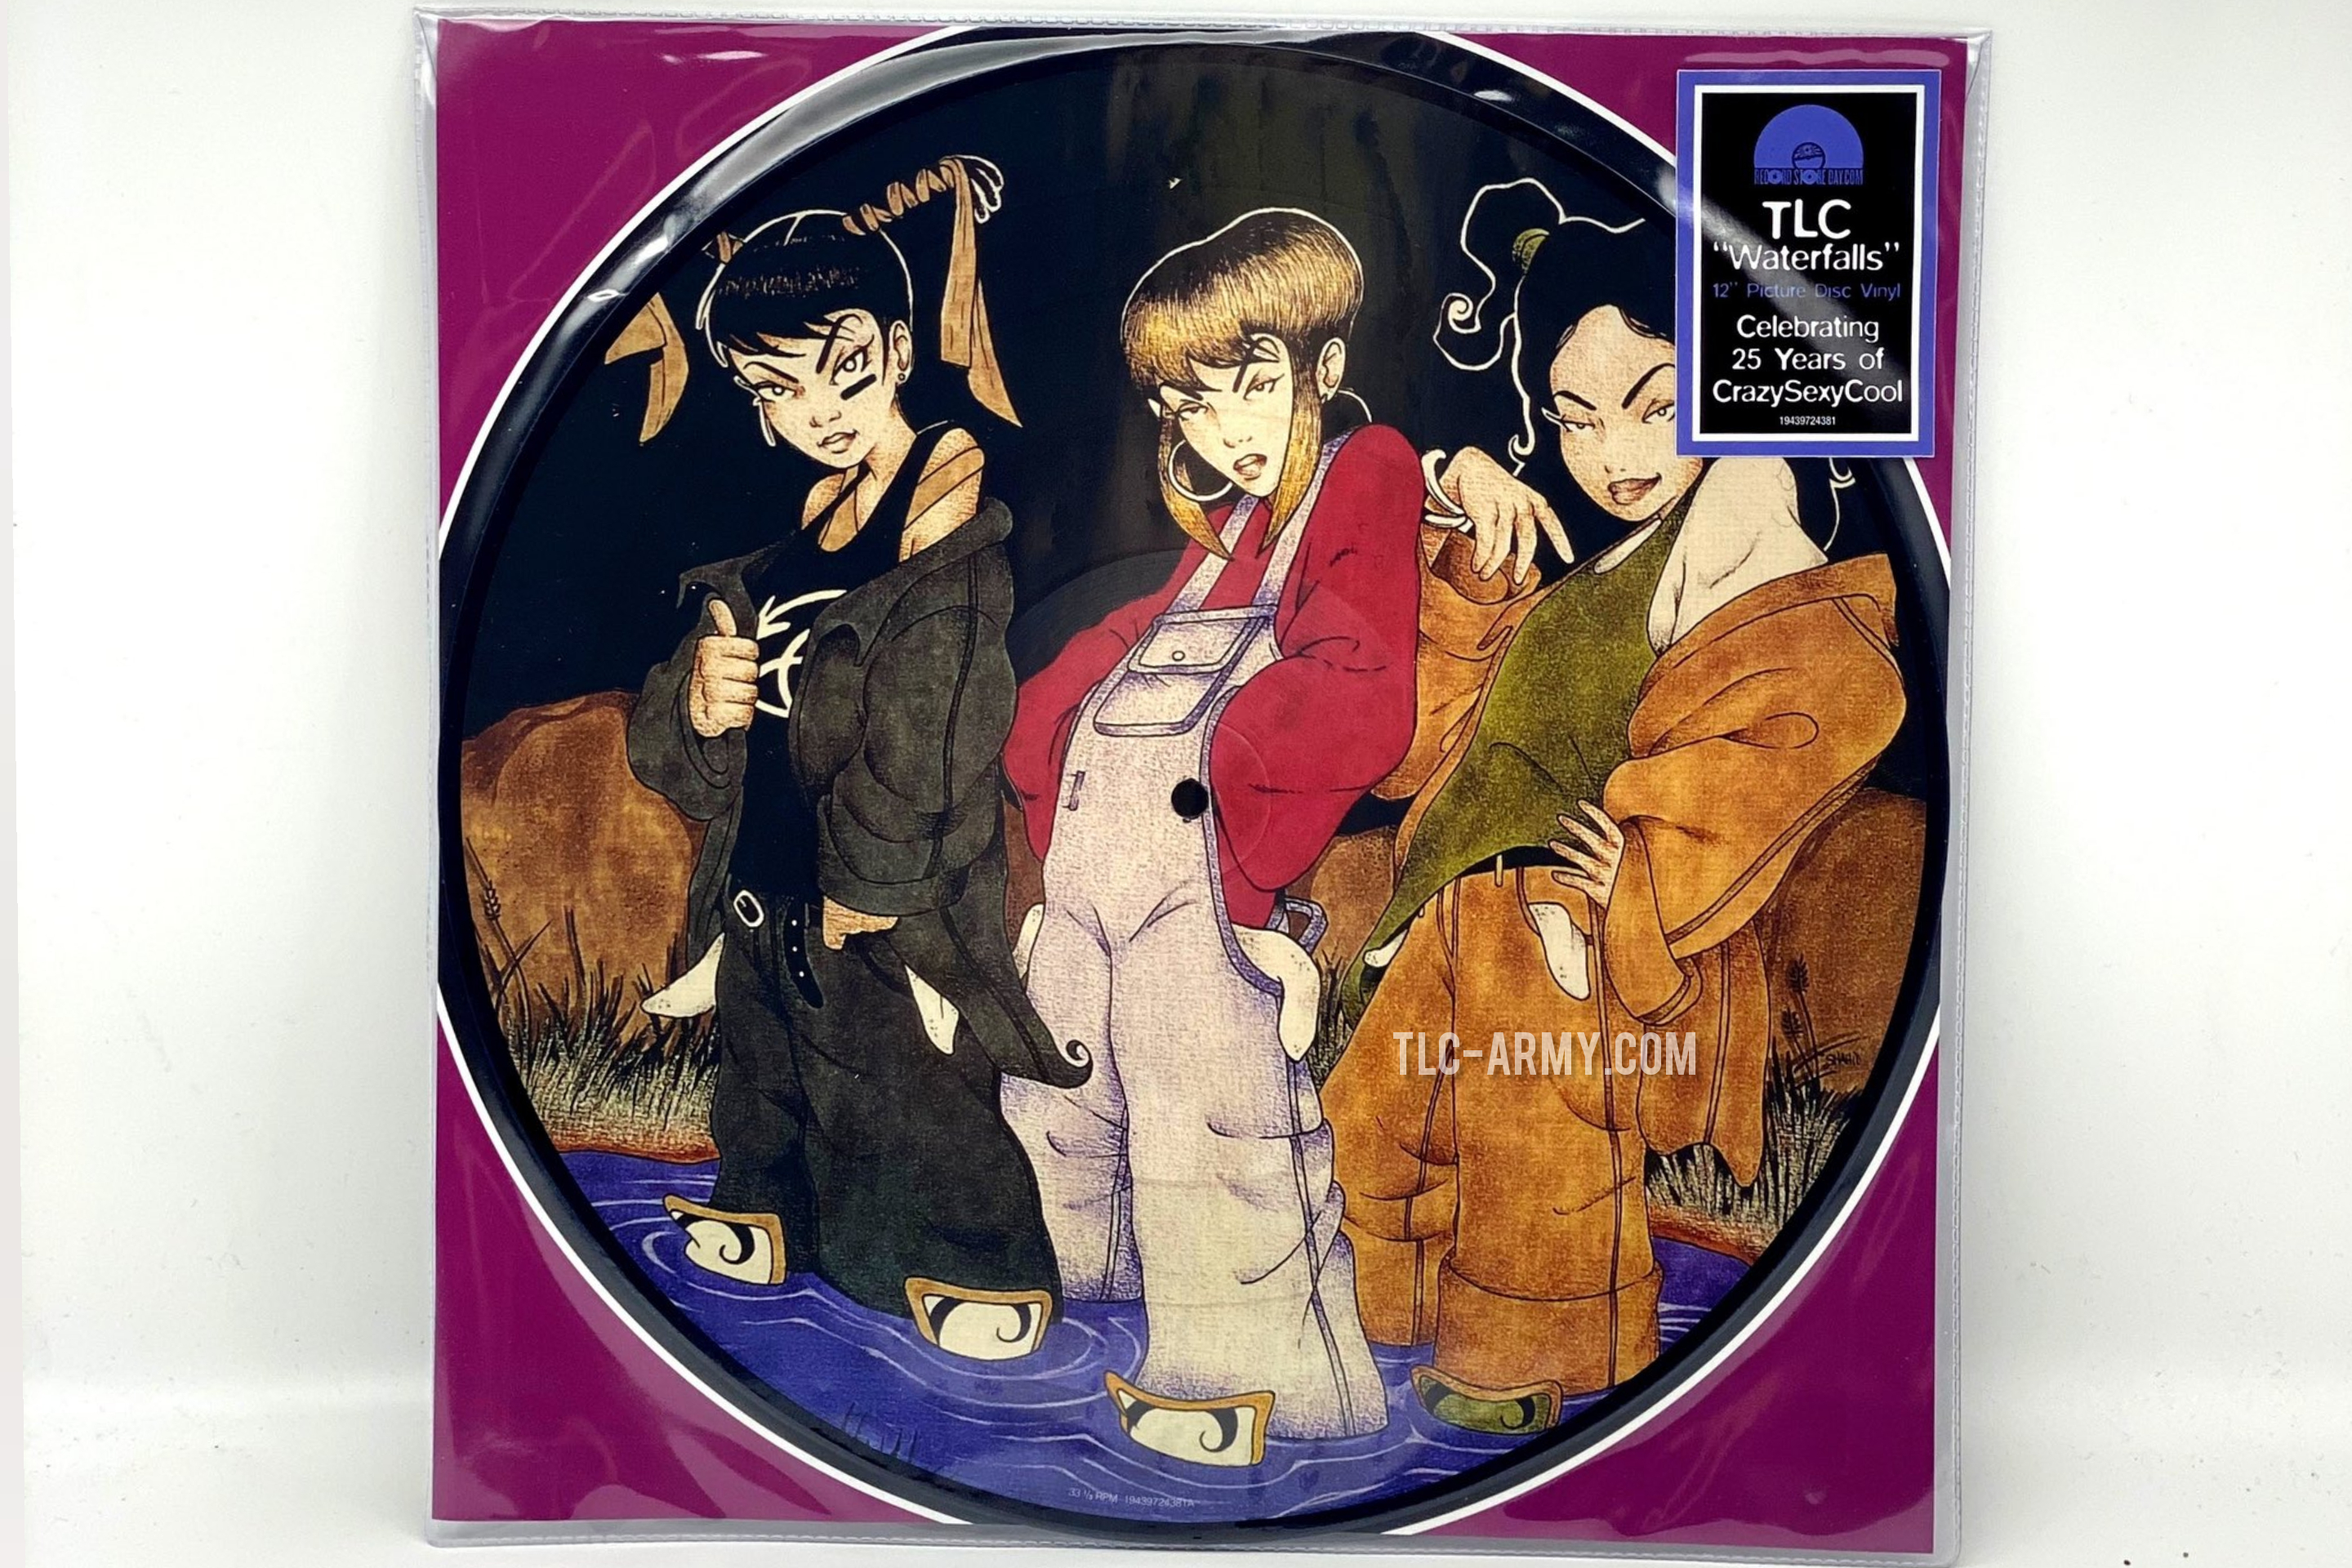 """TLC Release Limited Edition """"Waterfalls"""" Picture Vinyl For Record Store Day 2020"""